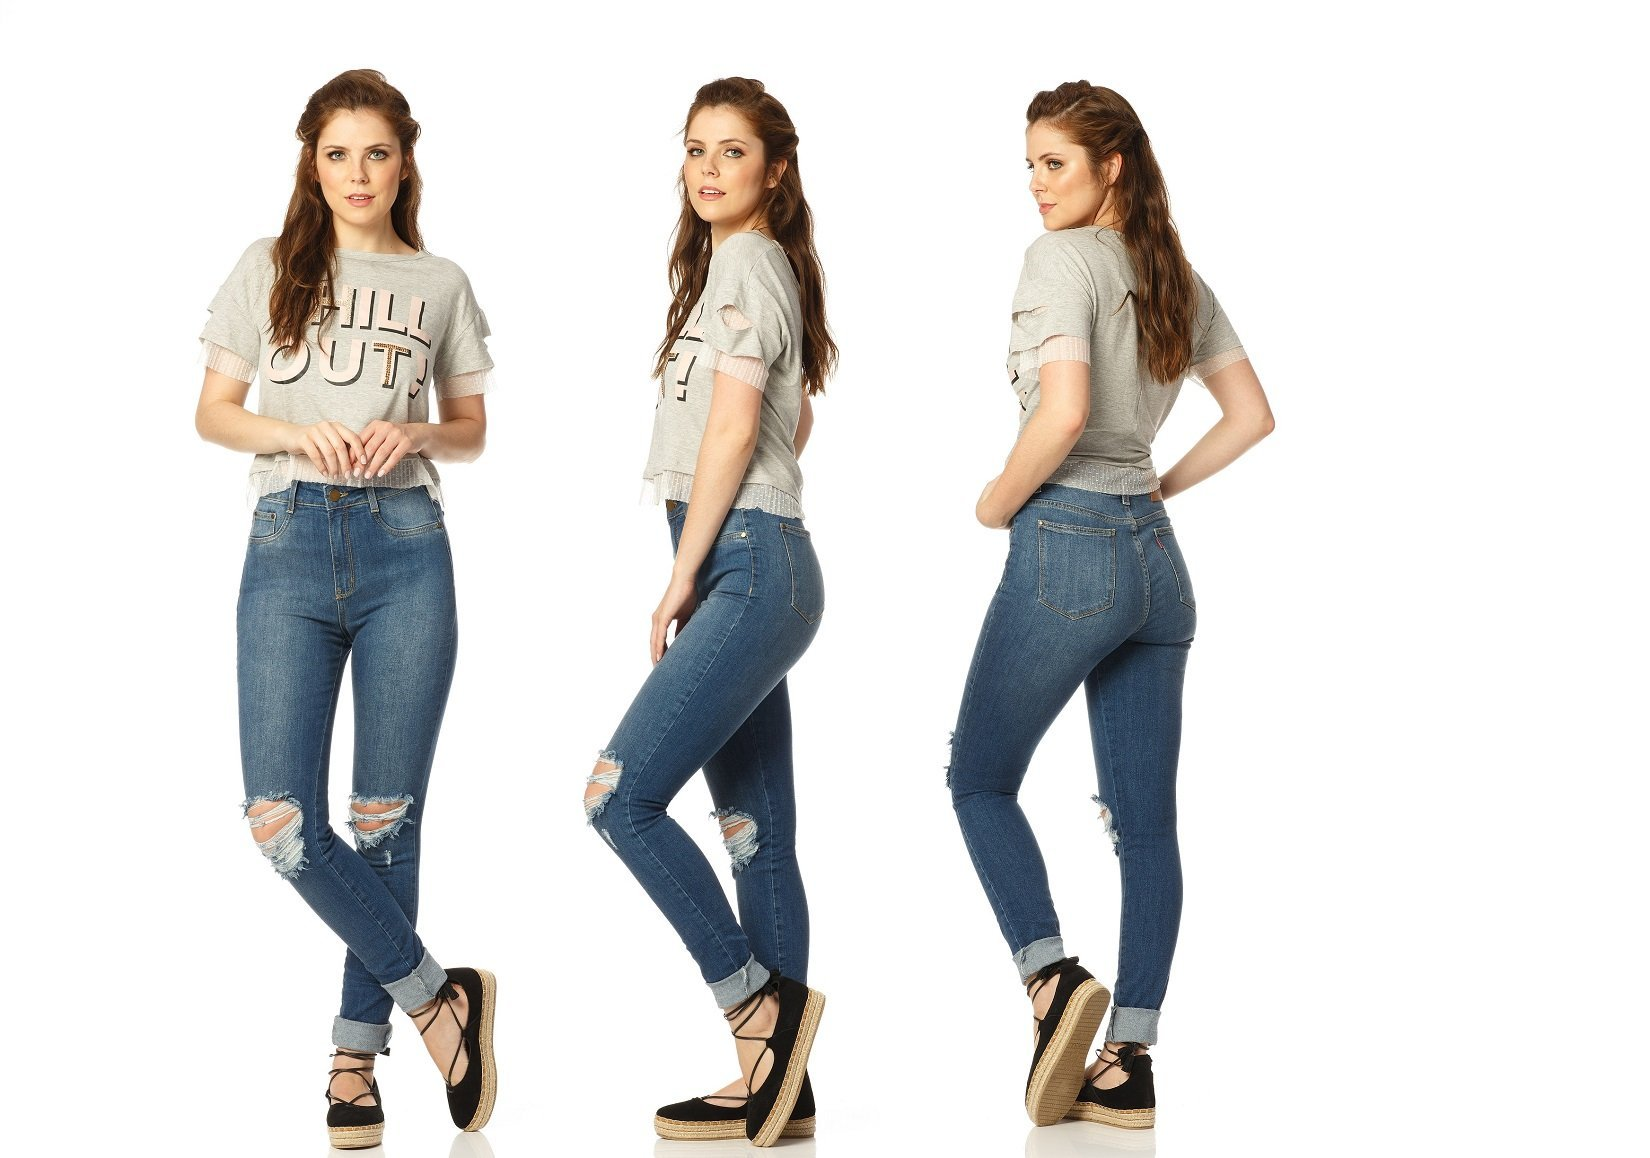 calca skinny media reducao dz2182 frente denim zero descricao